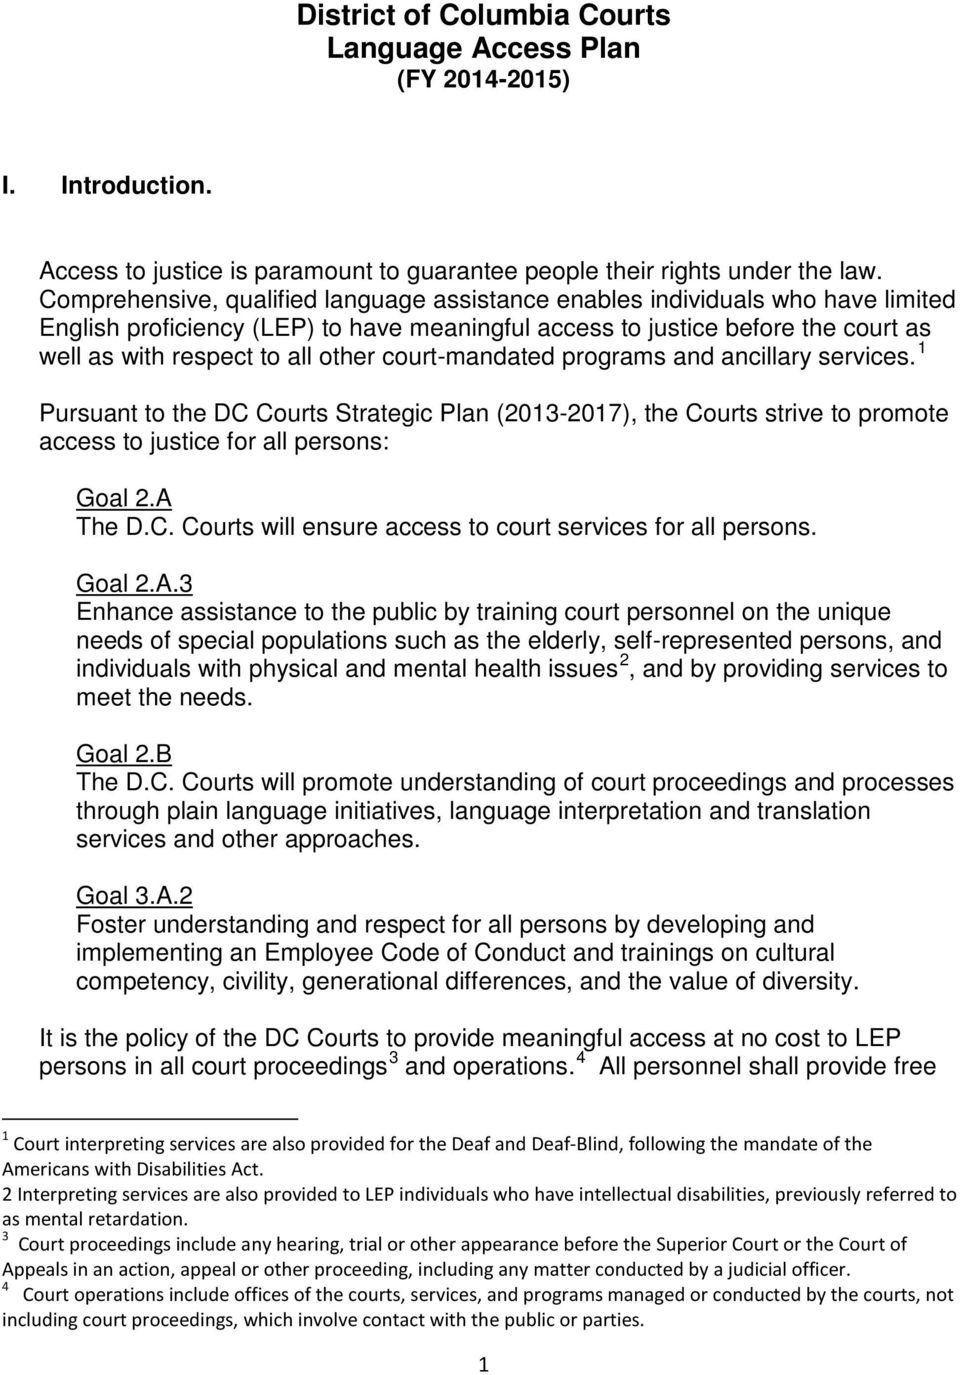 court-mandated programs and ancillary services. 1 Pursuant to the DC Courts Strategic Plan (2013-2017), the Courts strive to promote access to justice for all persons: Goal 2.A The D.C. Courts will ensure access to court services for all persons.